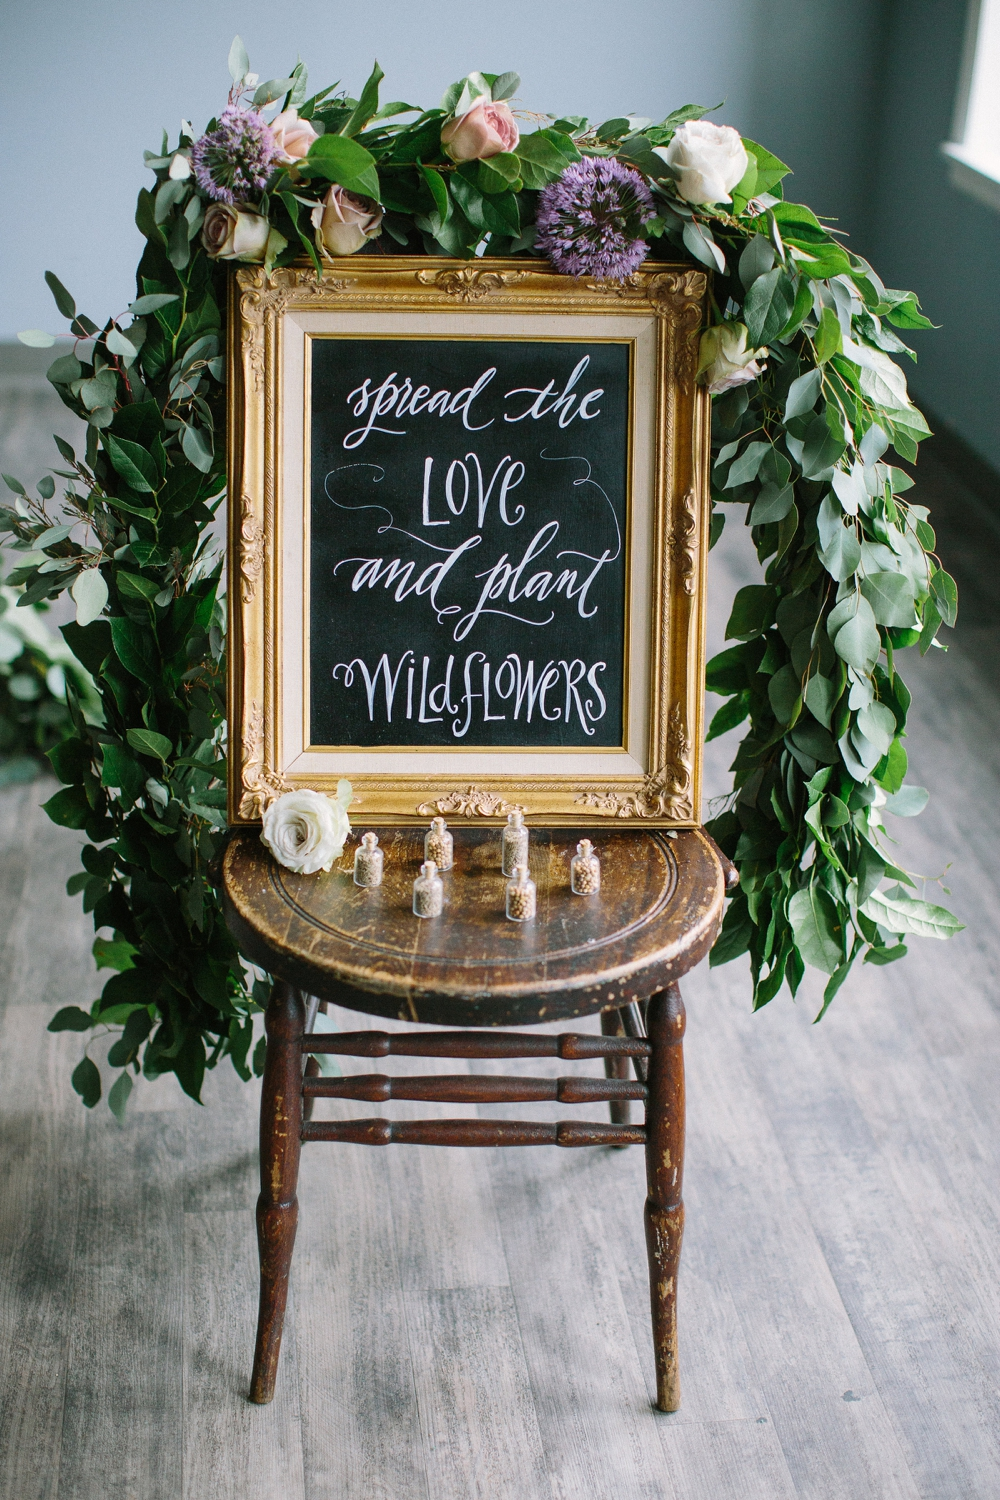 Minnesota_Wedding_Planner_Inspiration_Shoot_0957.jpg